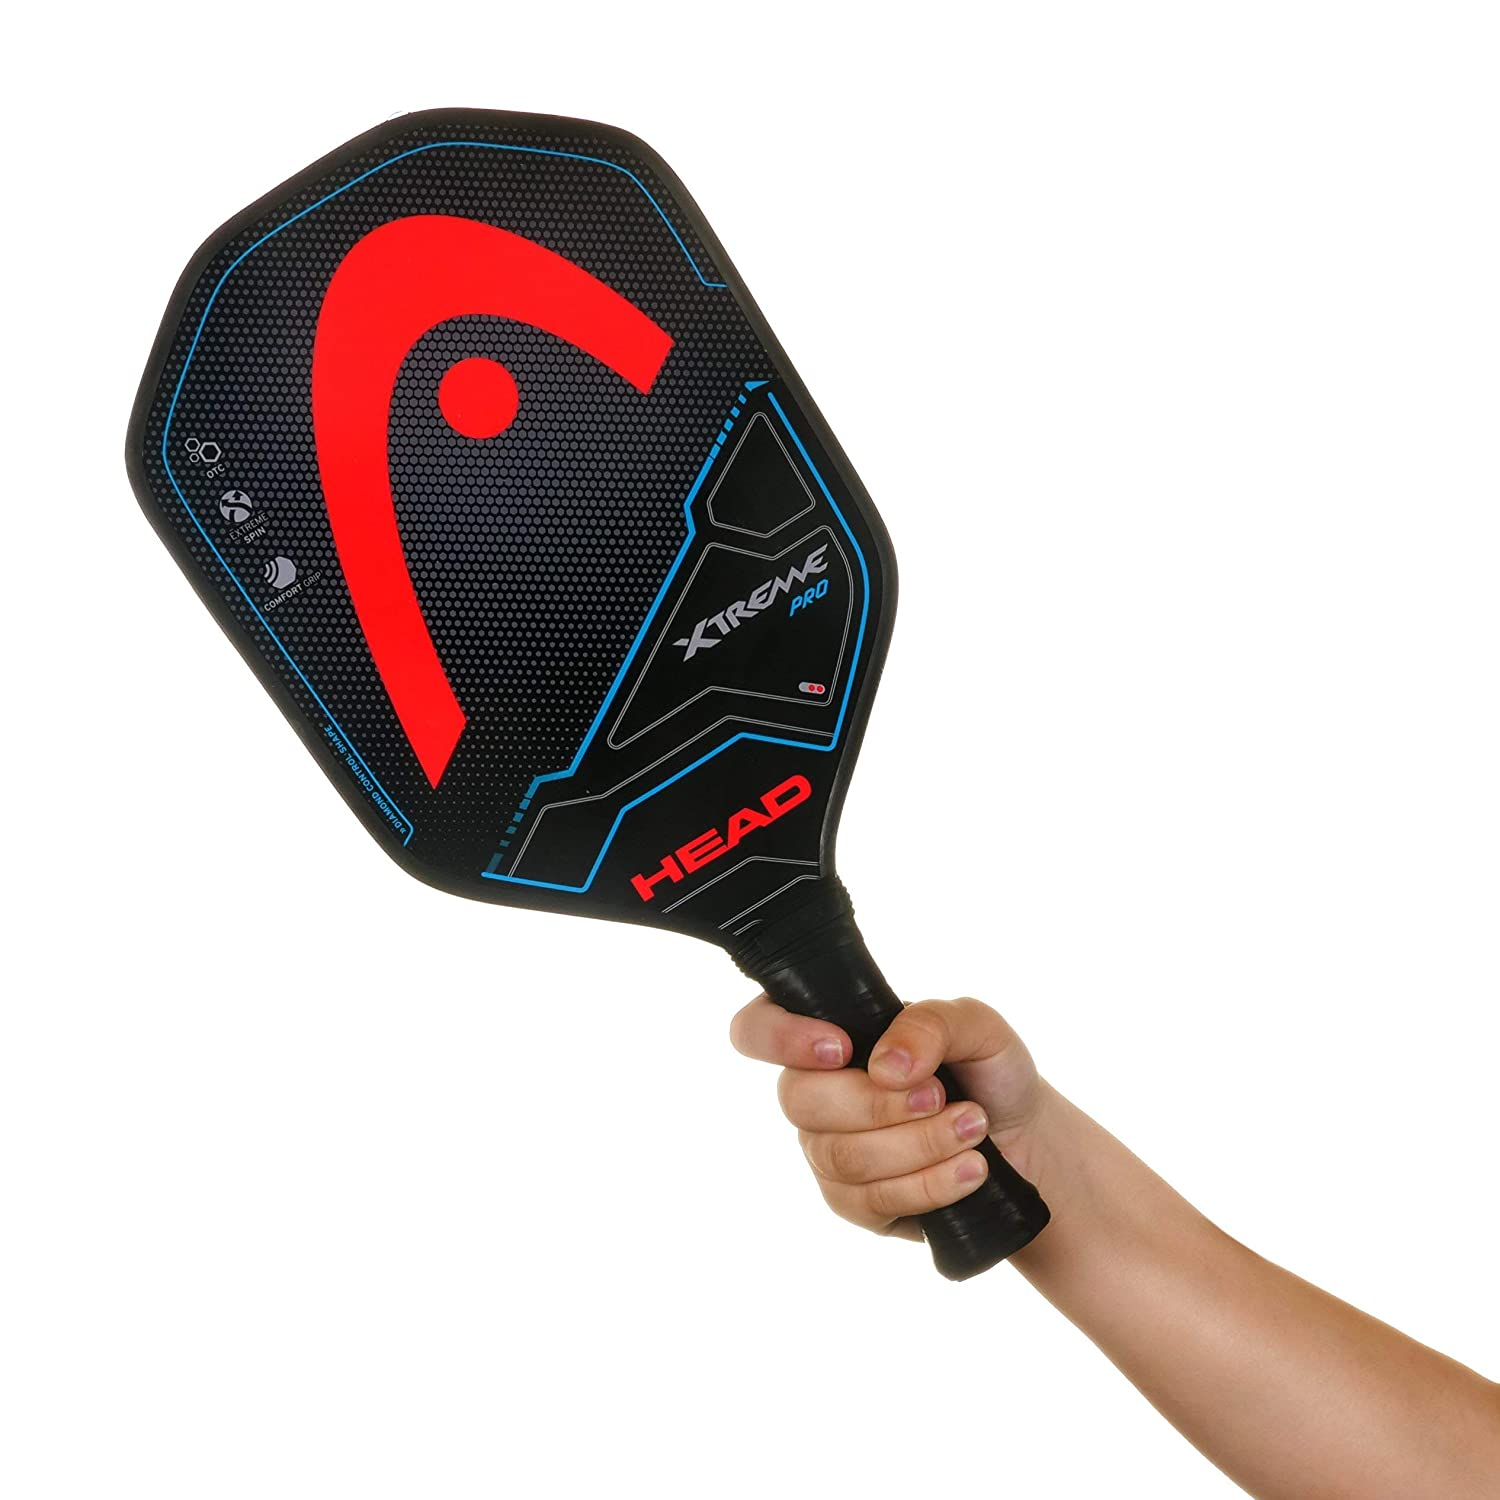 HEAD Extreme Pro Composite Pickleball Paddle